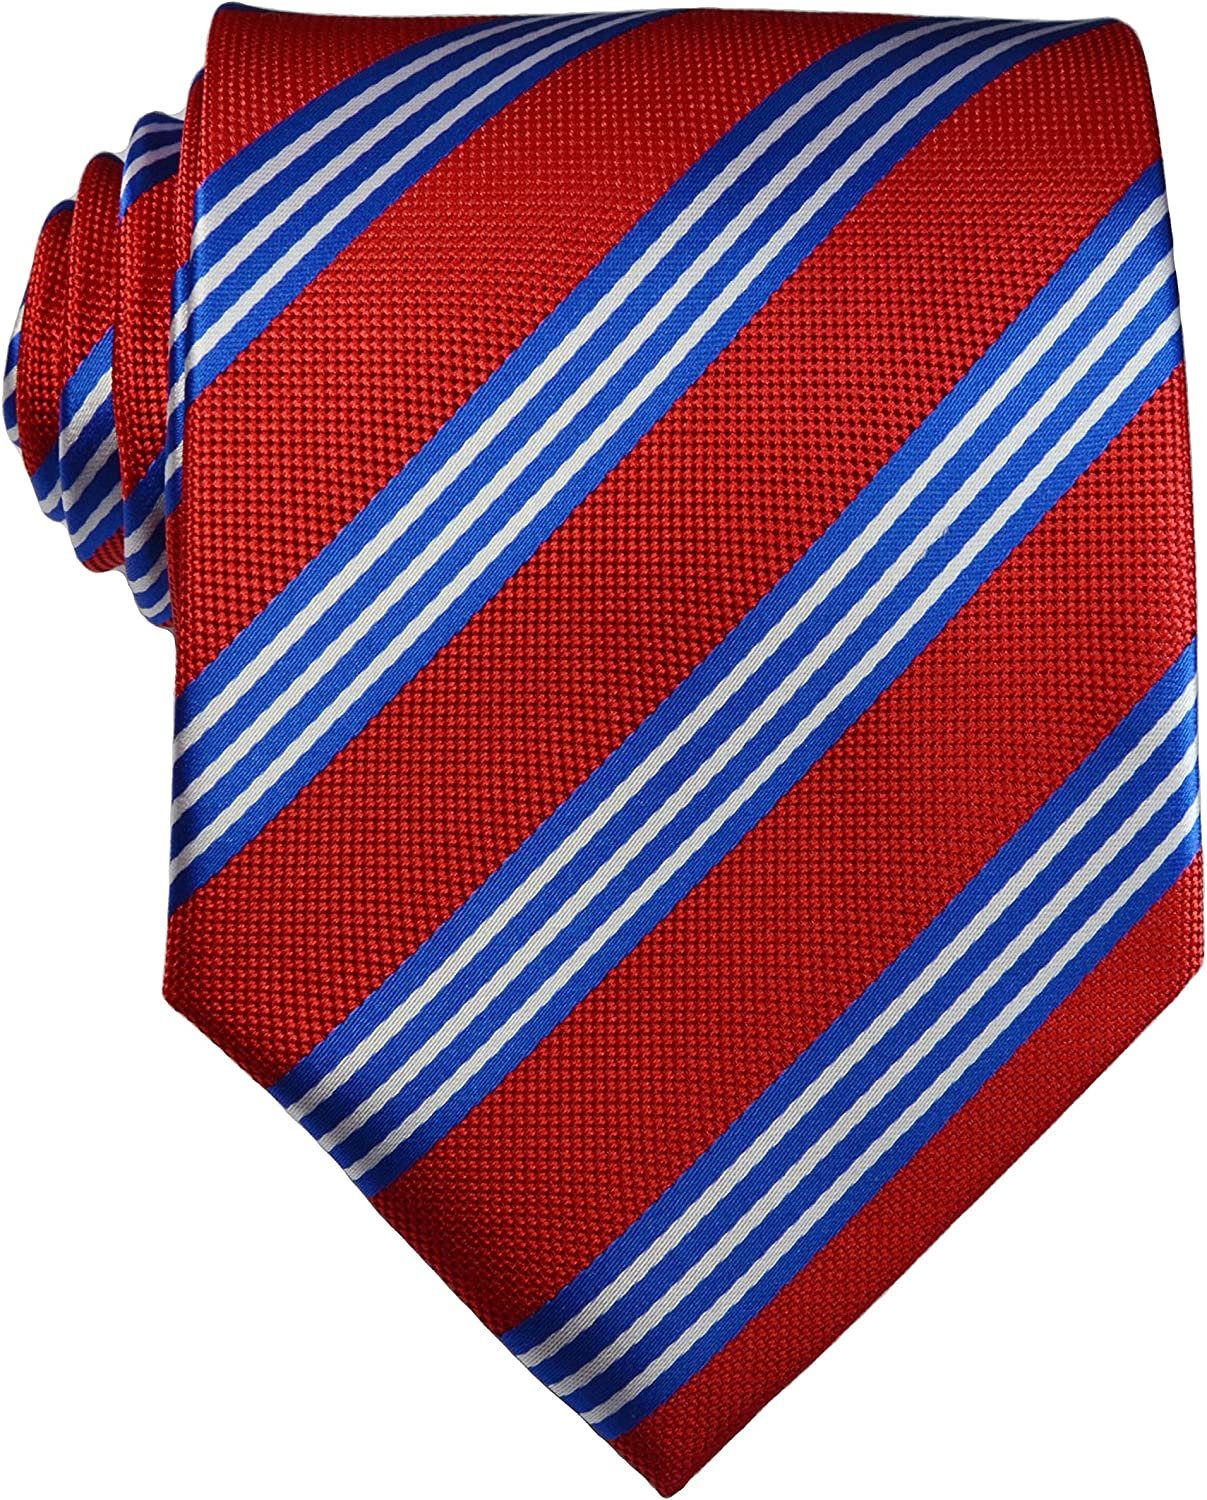 Dealing full price reduction Mr.ZHANG New Limited Special Price Classic Striped JACQUARD Neckt Tie Silk WOVEN Men's